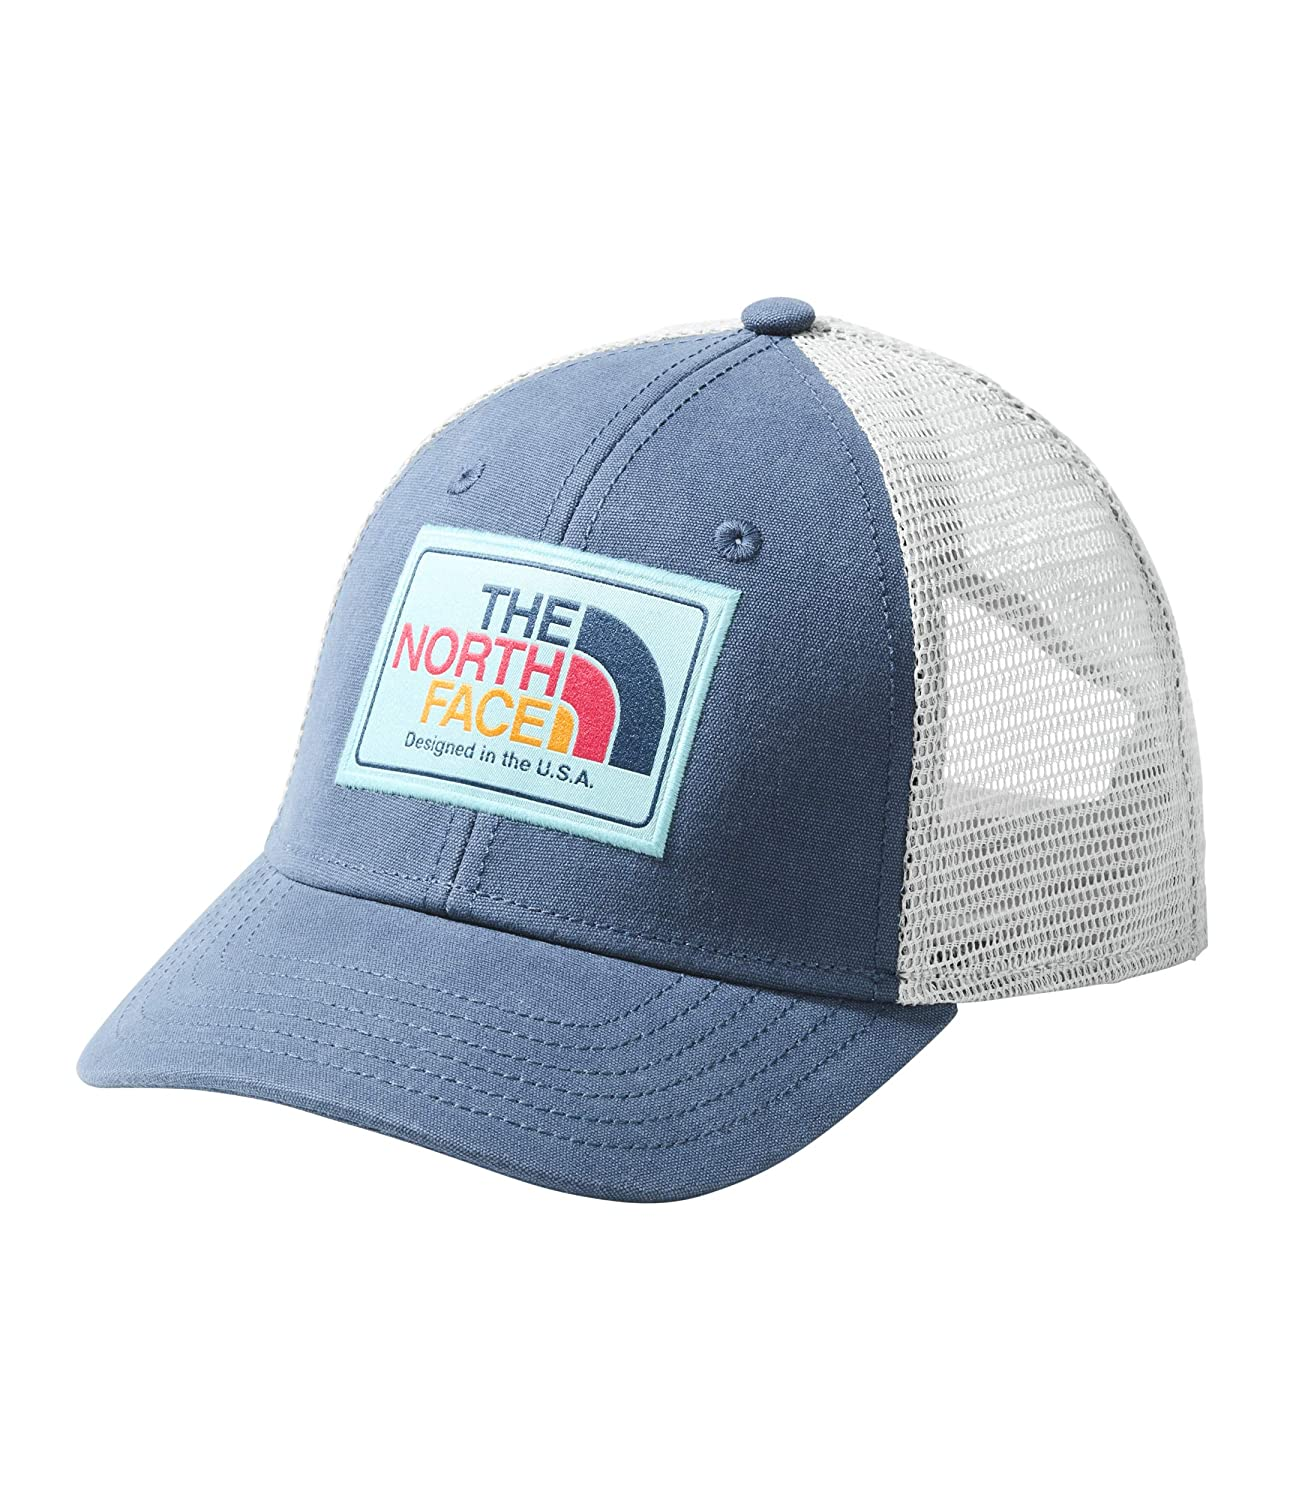 7861ae94a3 Amazon.com  The North Face Kids Unisex Youth Mudder Trucker Hat Blue Wing  Teal Mint Blue Multi One Size  Clothing